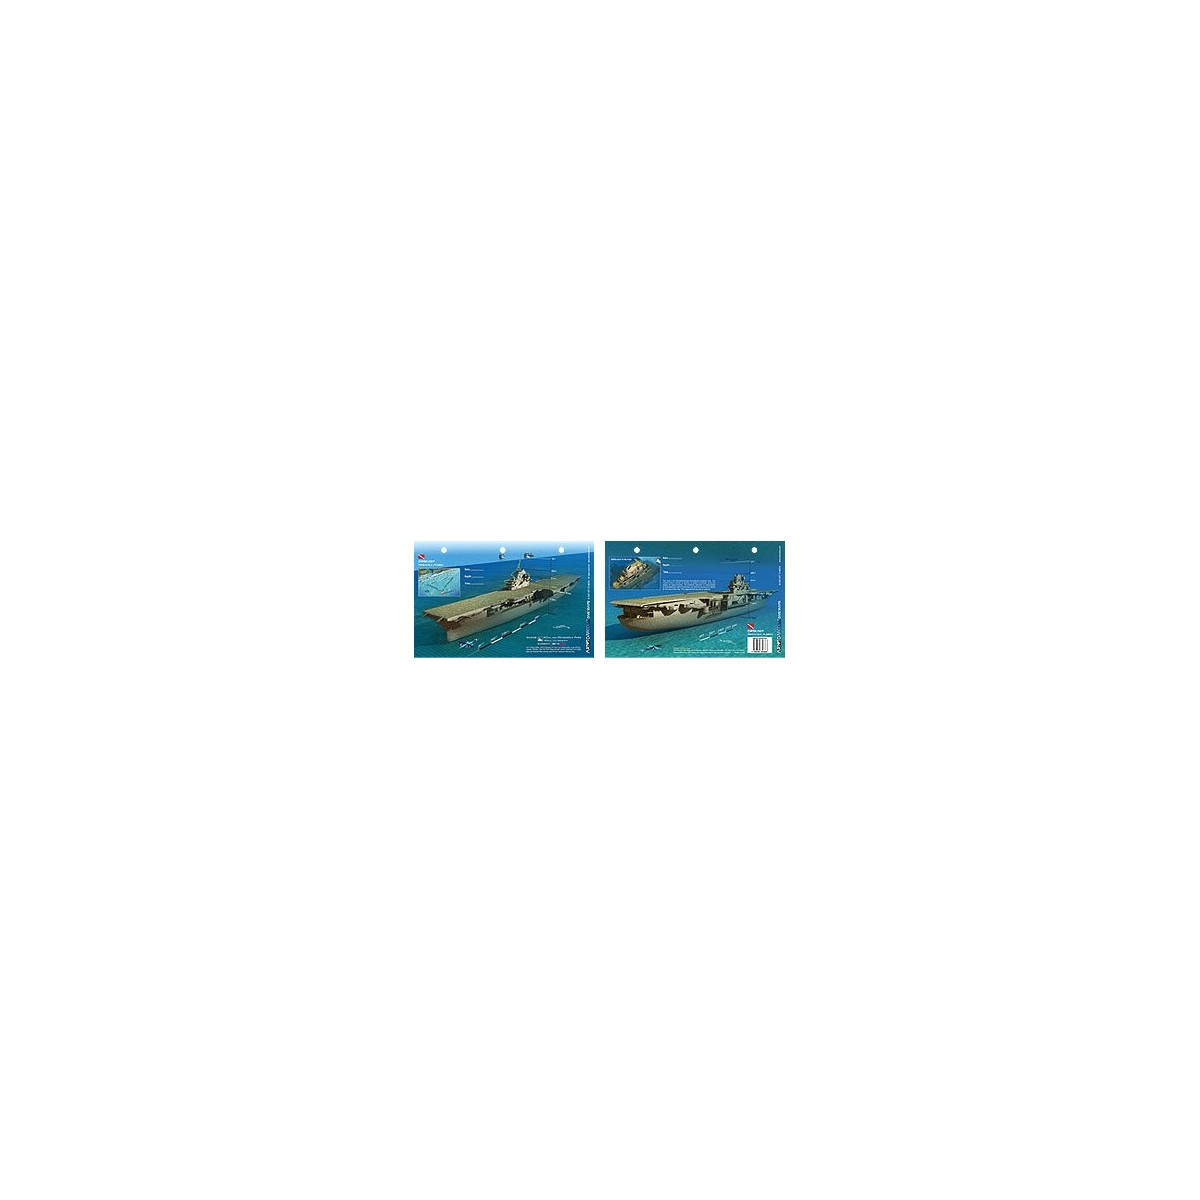 Oriskany in Pensacola, Florida (8.5 x 5.5 Inches) (21.6 x 15cm) - New Art to Media Underwater Waterproof 3D Dive Site Map